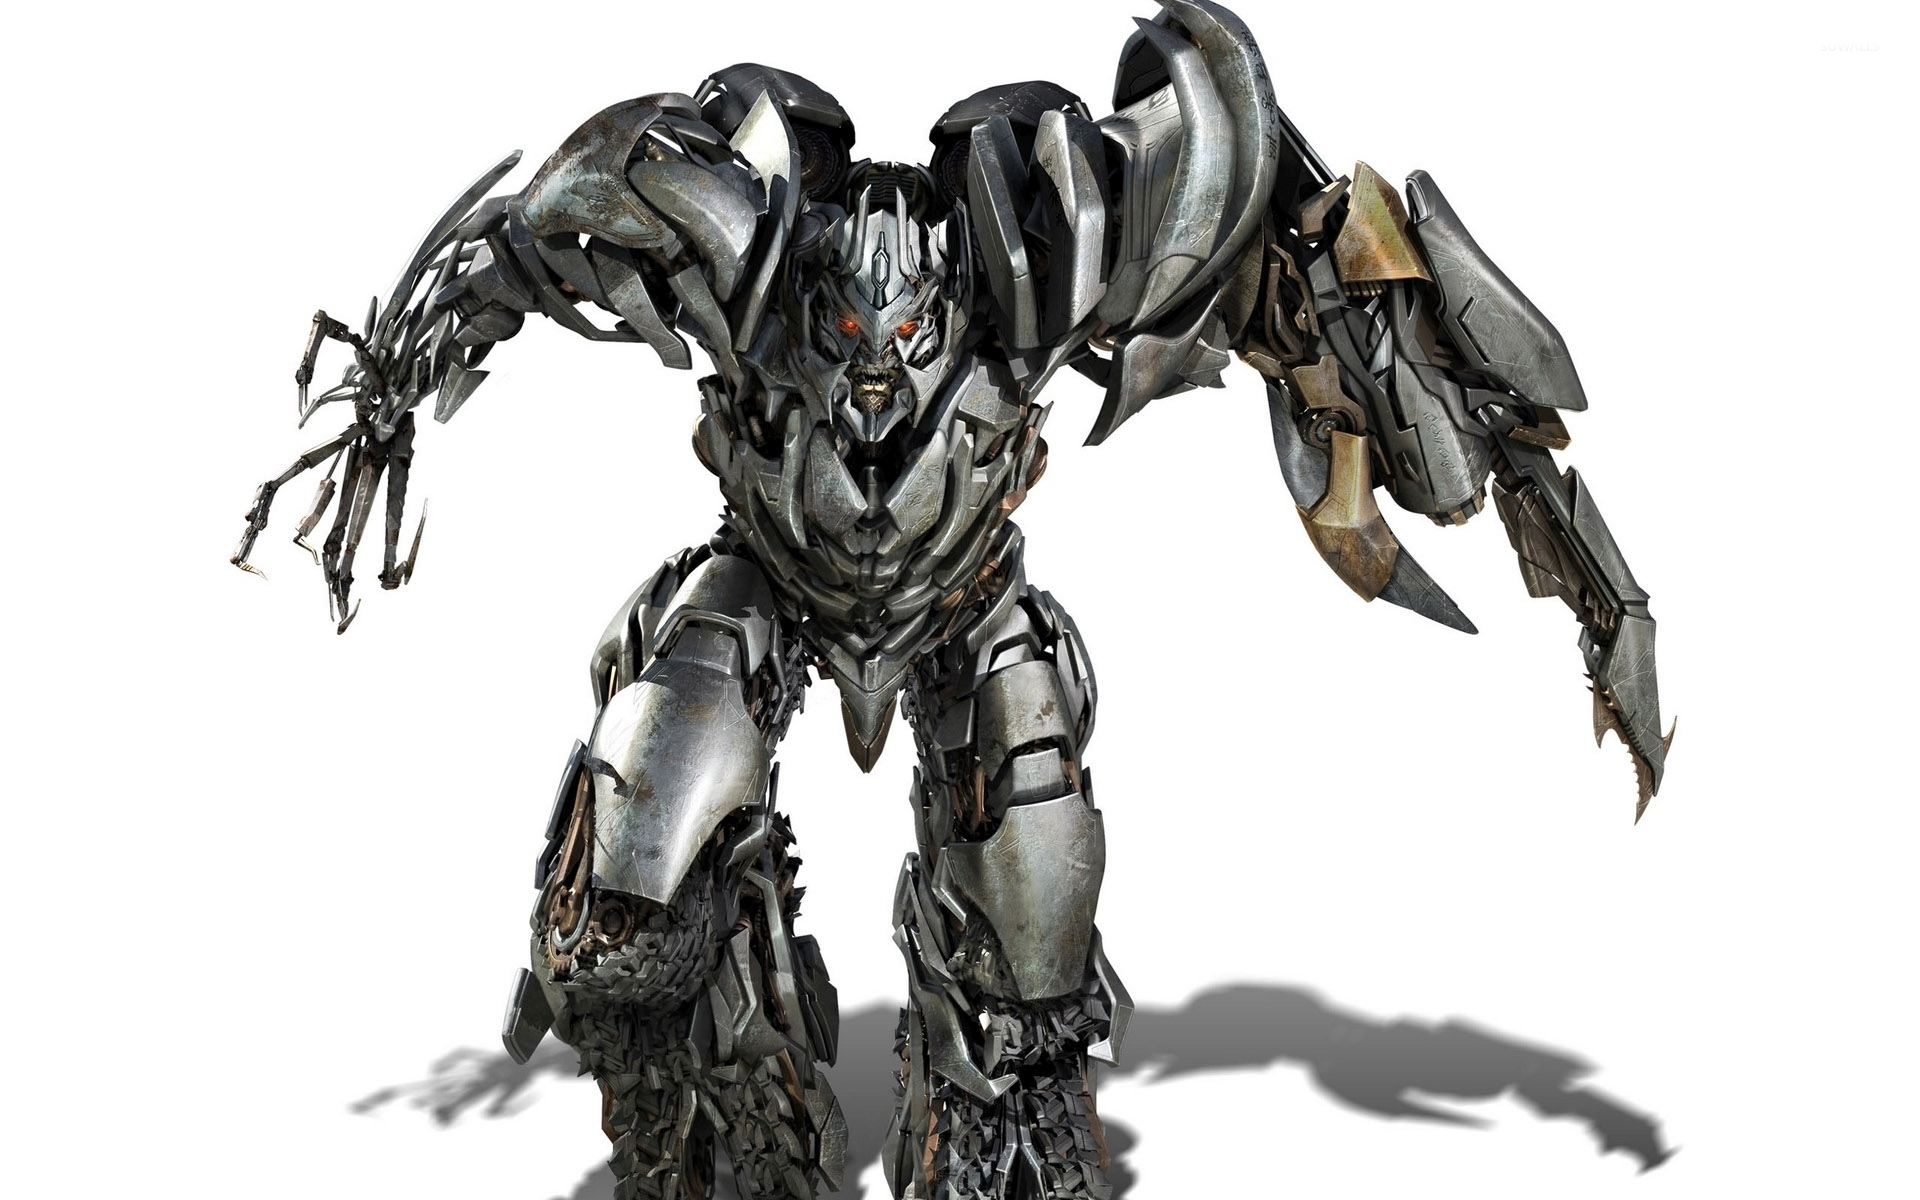 megatron - transformers [2] wallpaper - movie wallpapers - #34552